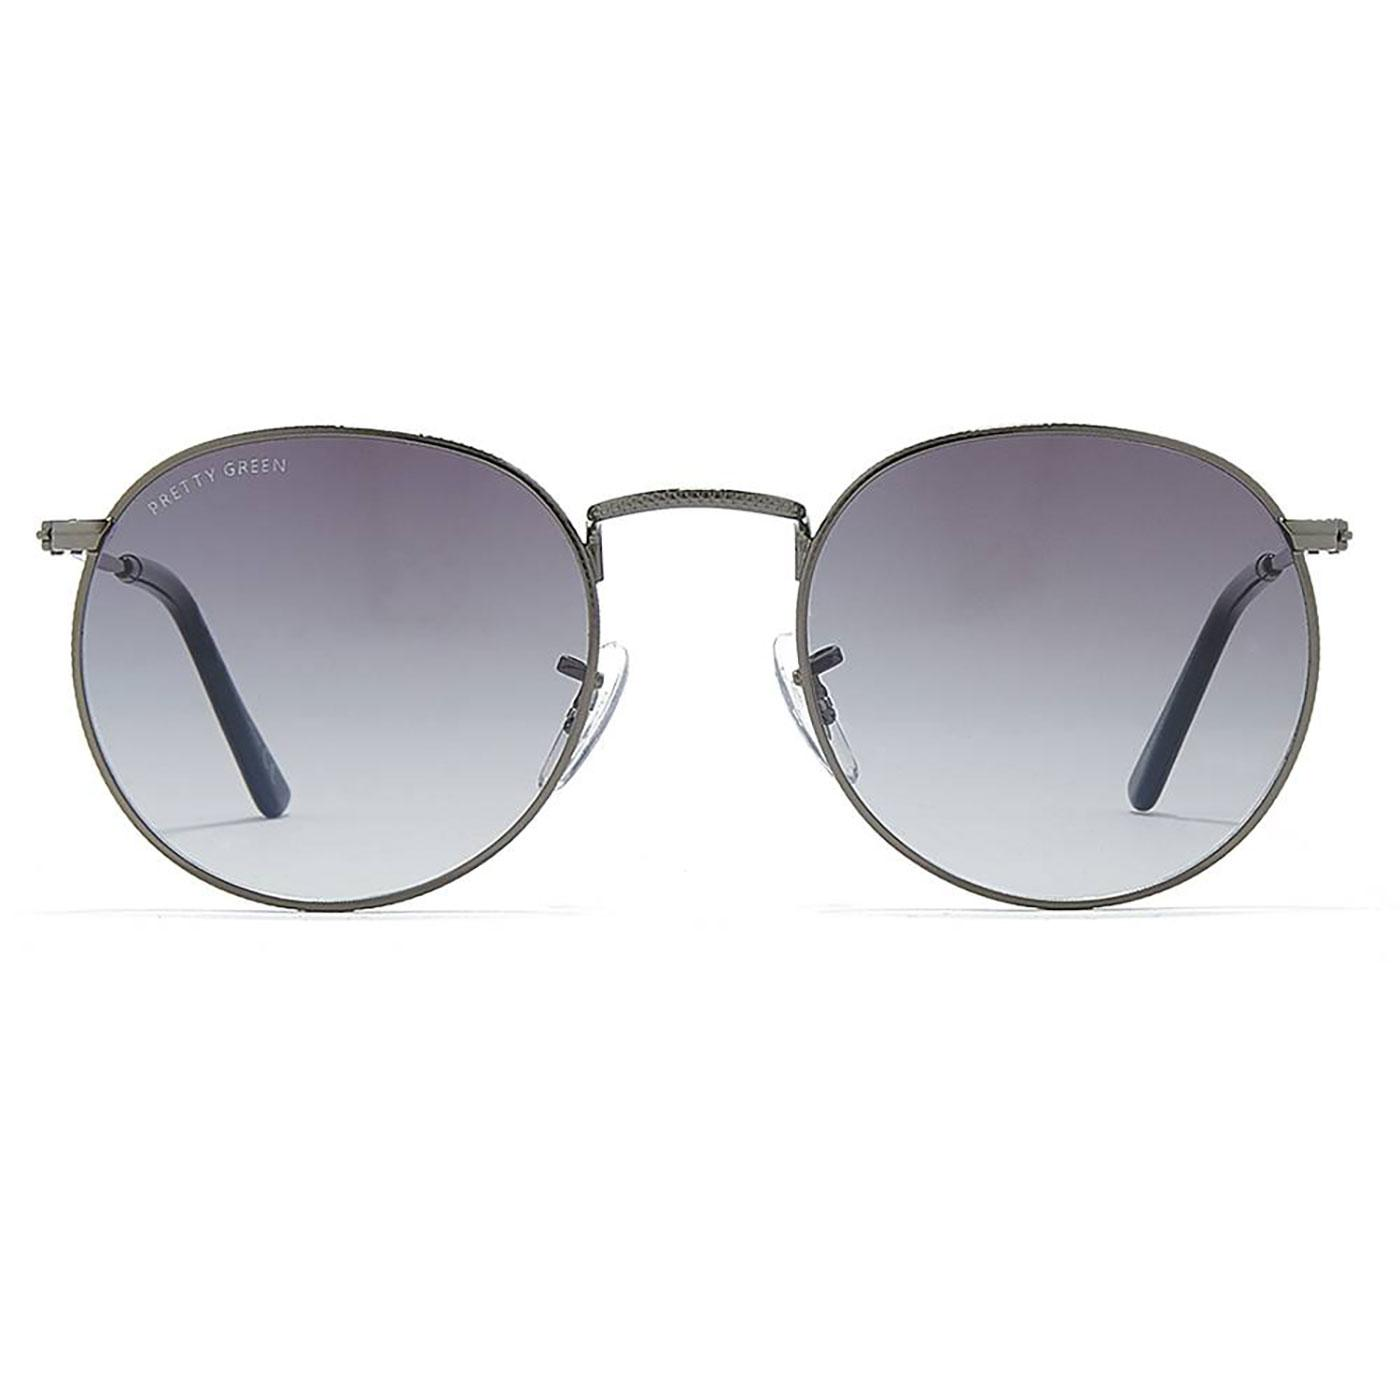 PRETTY GREEN Retro 60's Round Sunglasses GREY